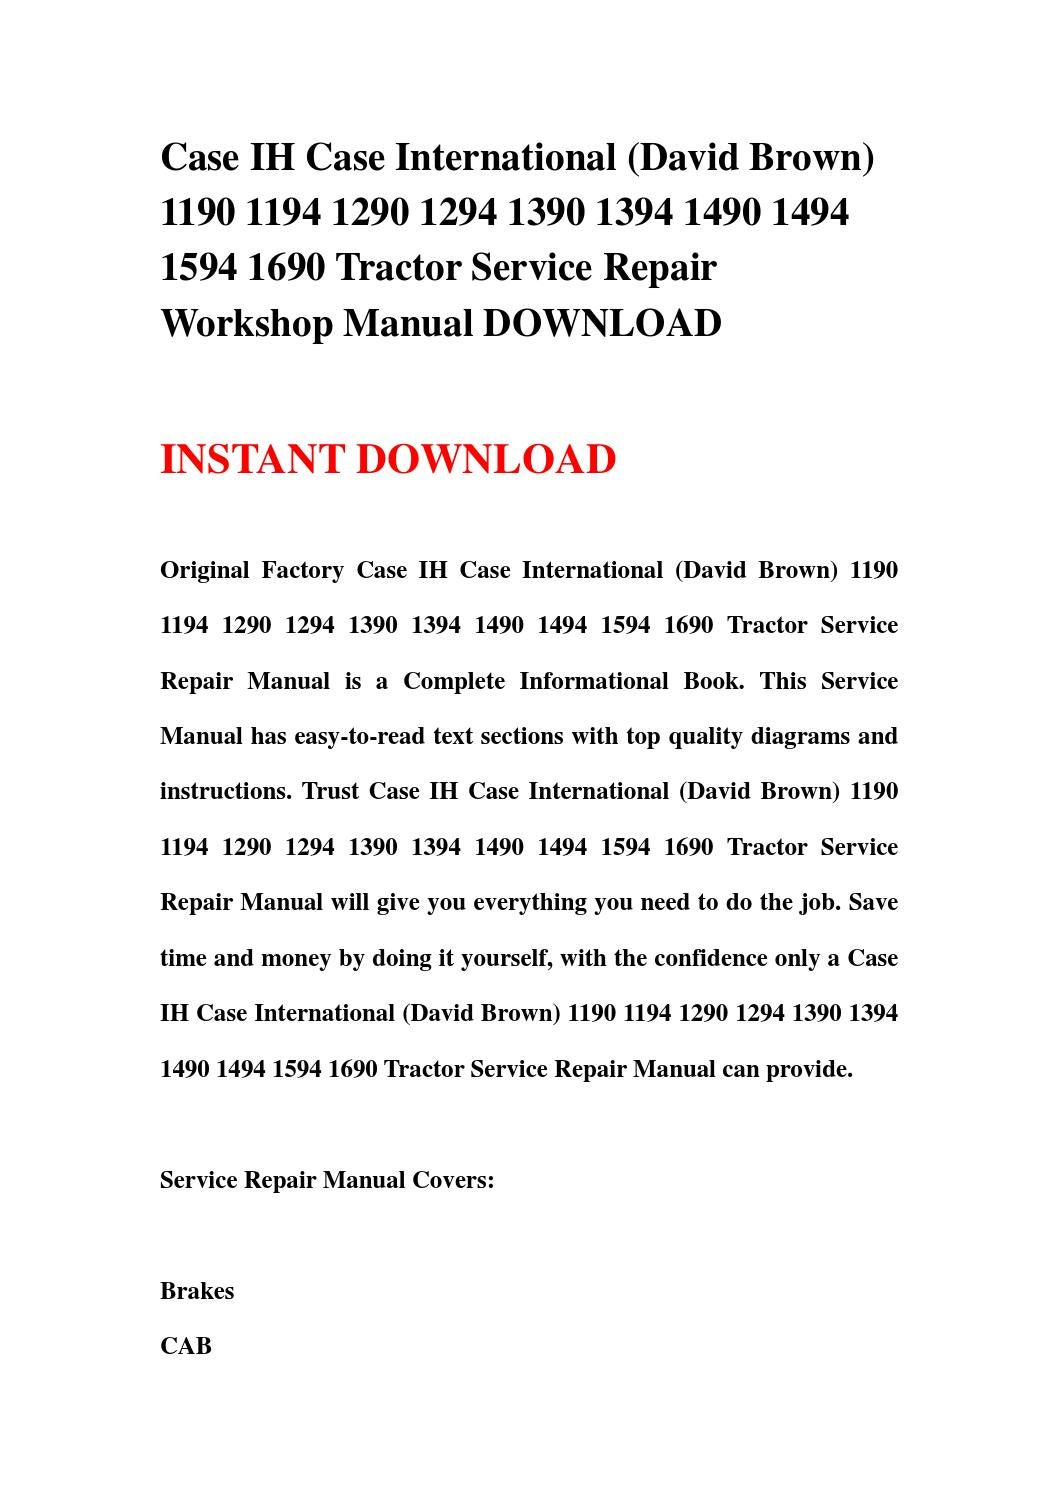 wiring diagram ih wiring image wiring diagram ca ih 1586 wiring schematic wd wiring diagram chevrolet 350 on wiring diagram ih 1586